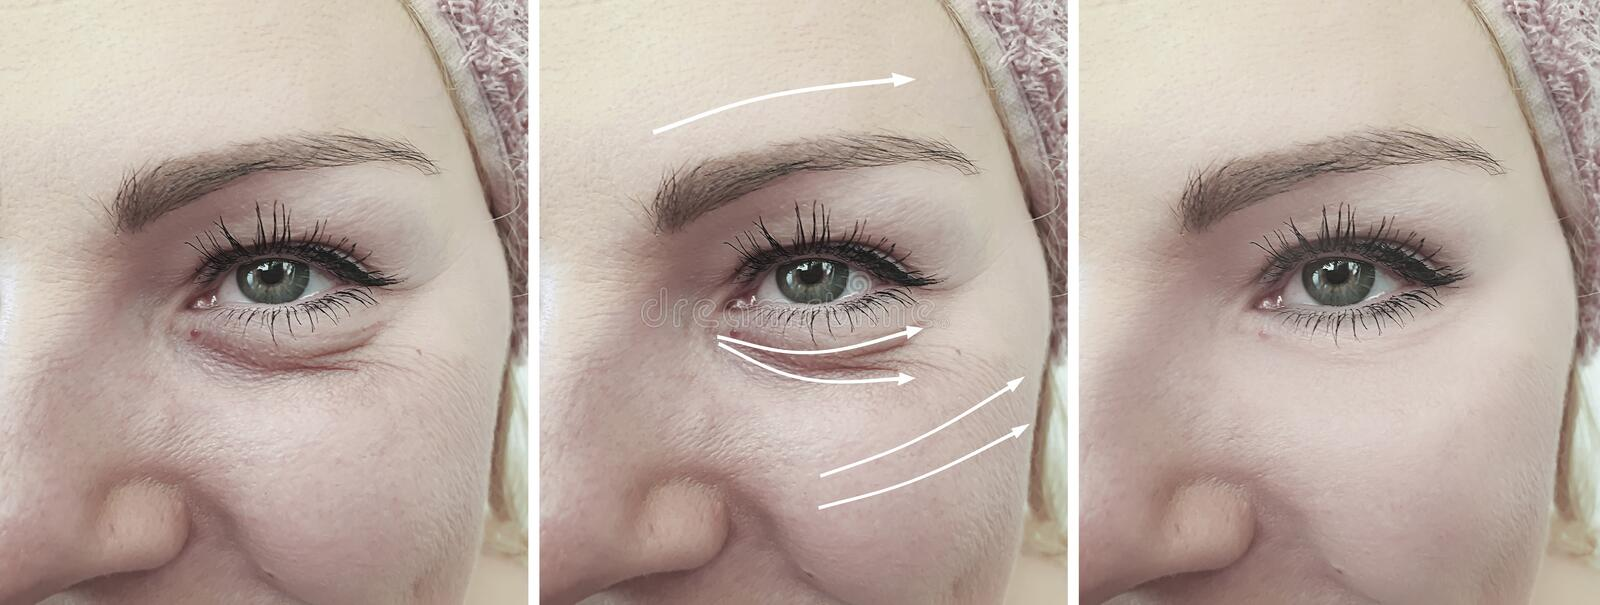 Woman face crease arrow difference effect eye removal before and after treatment. Woman face crease before and after removal    eye effect cosmetology arrow royalty free stock photos